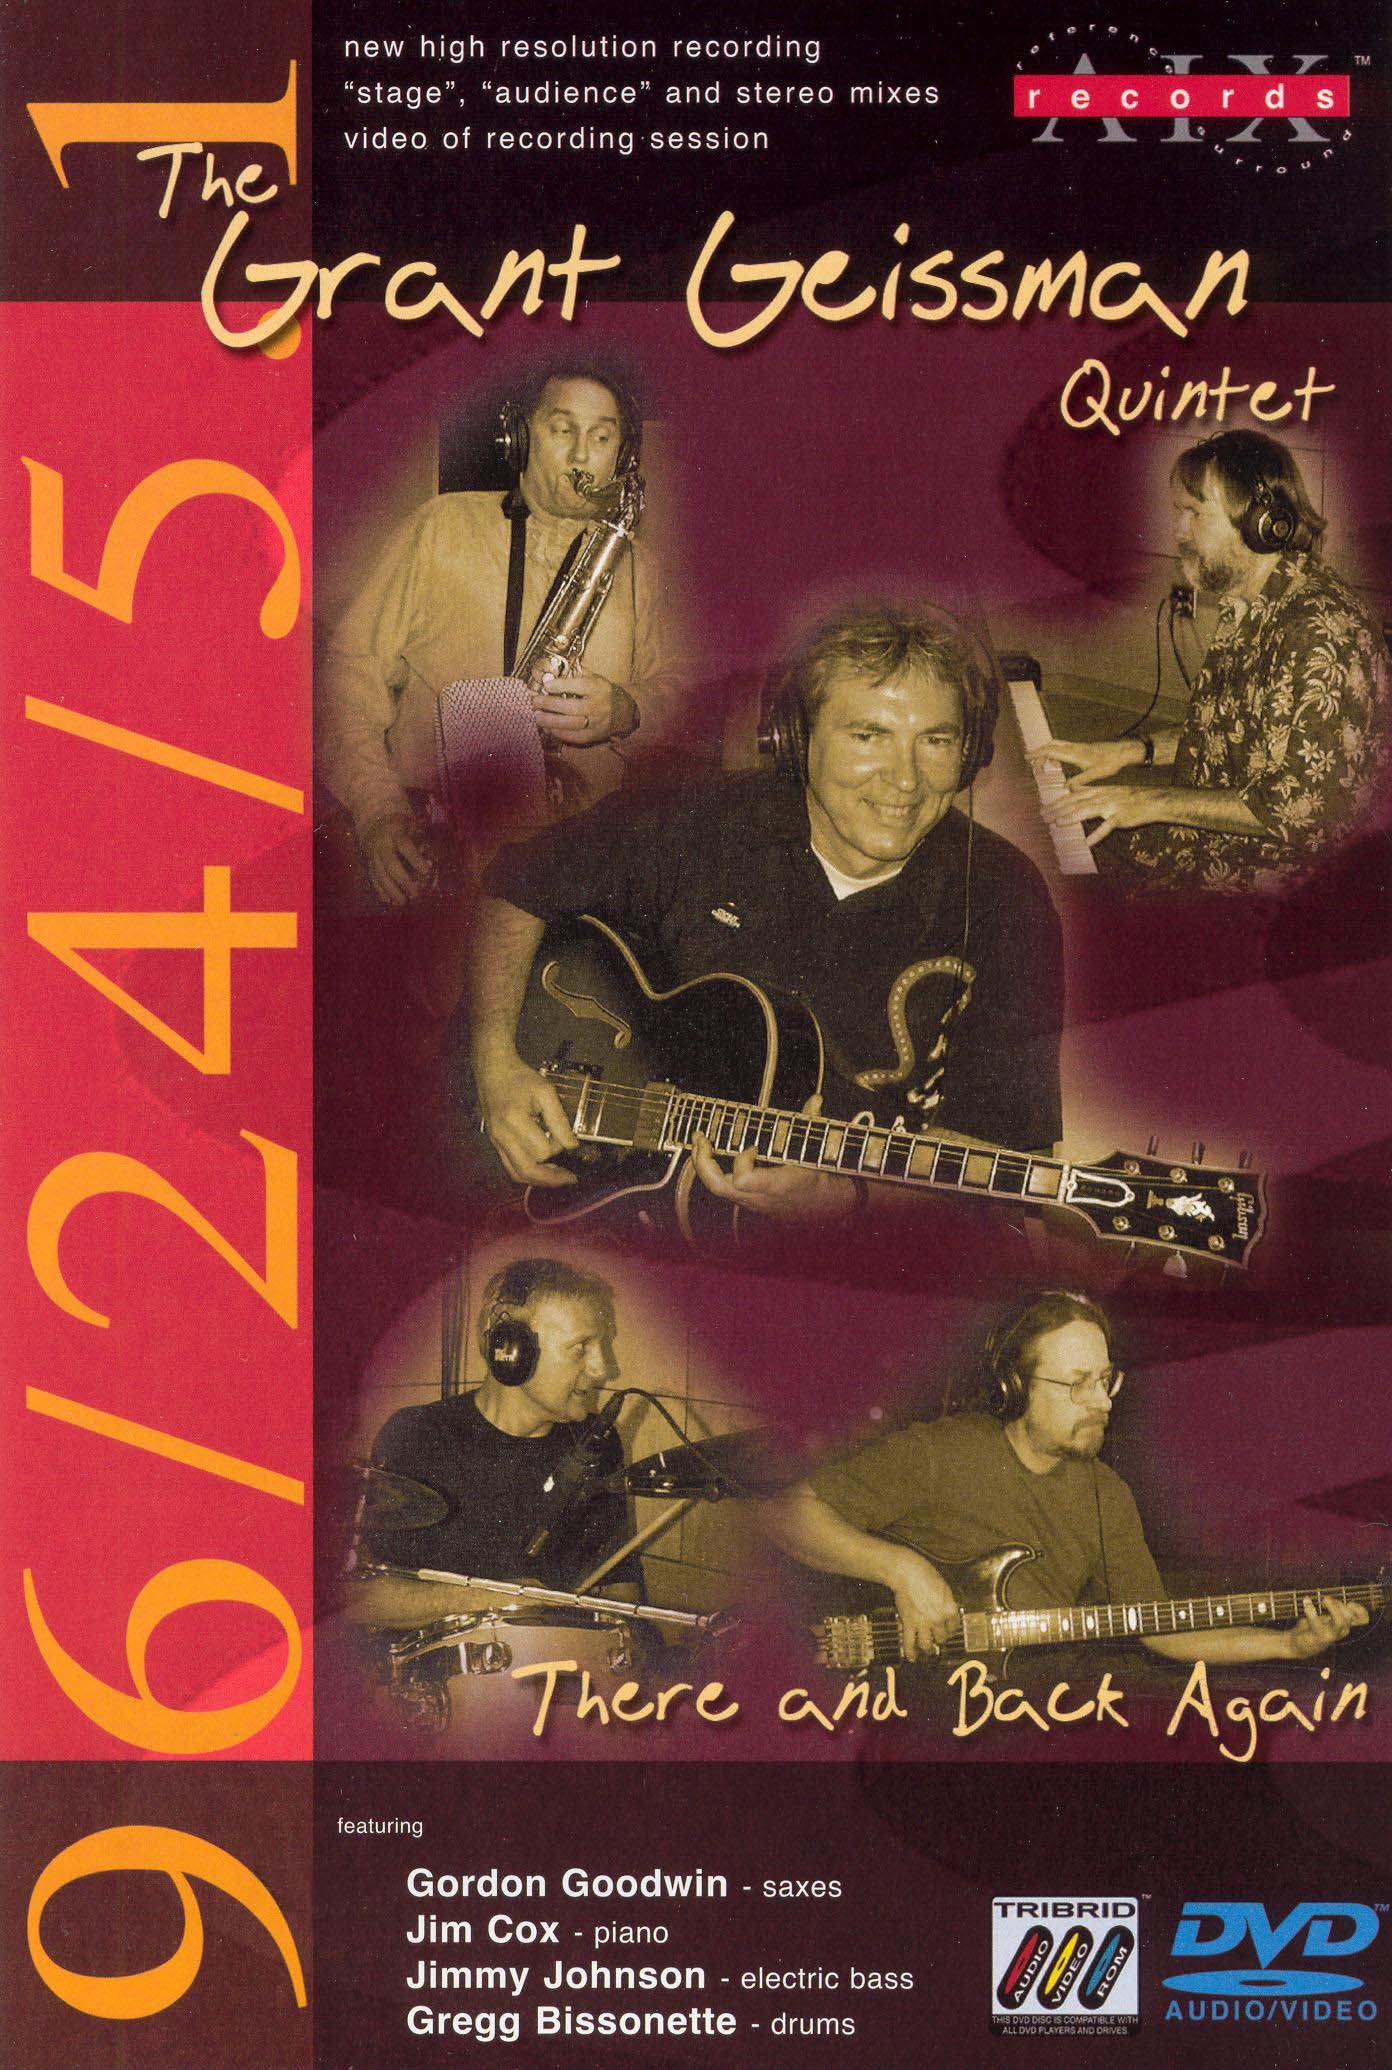 The Grant Geissman Quintet: There and Back Again